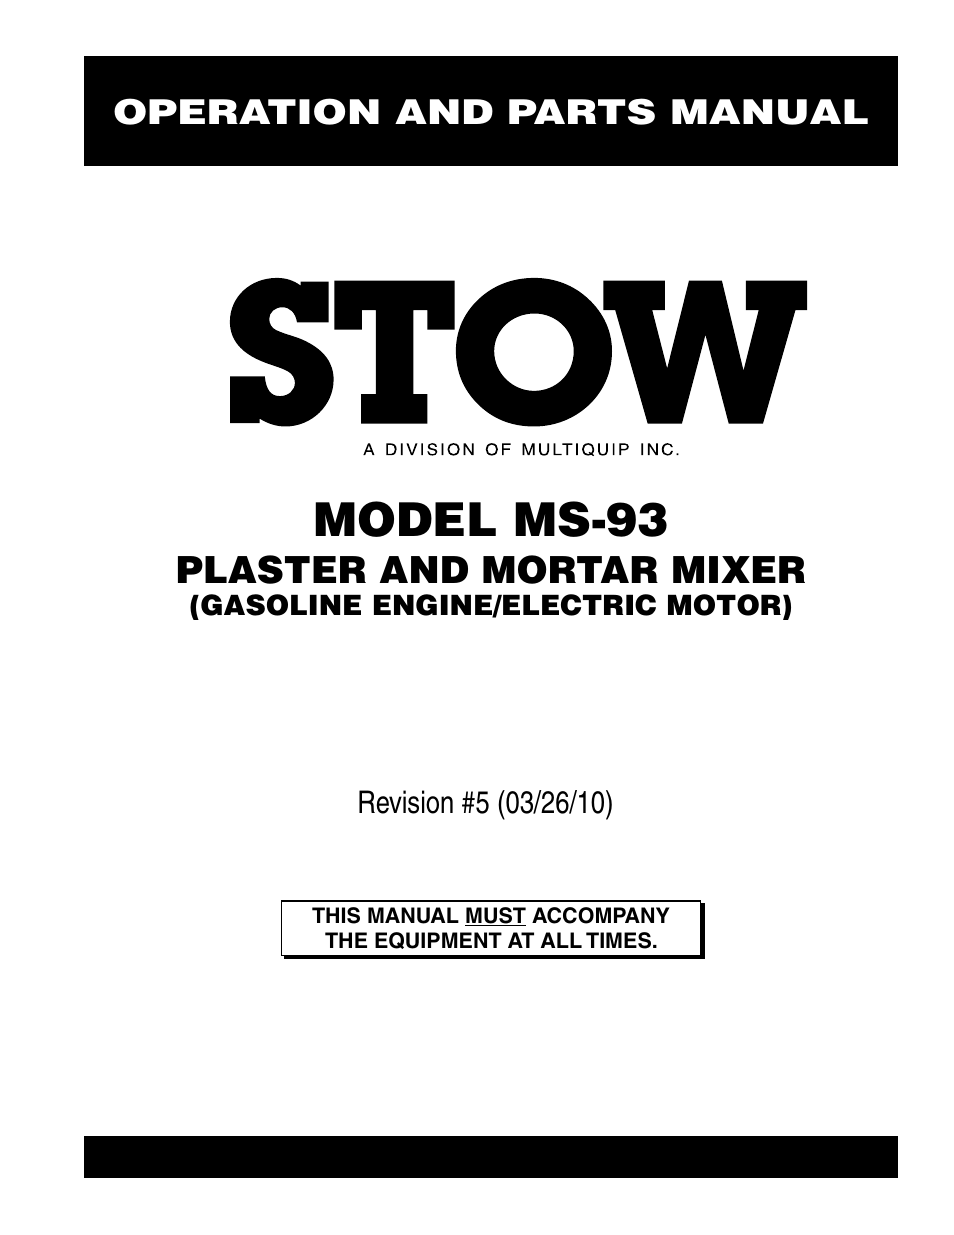 Stow Plaster and Mortar Mixer (Gasoline Engine/Electric